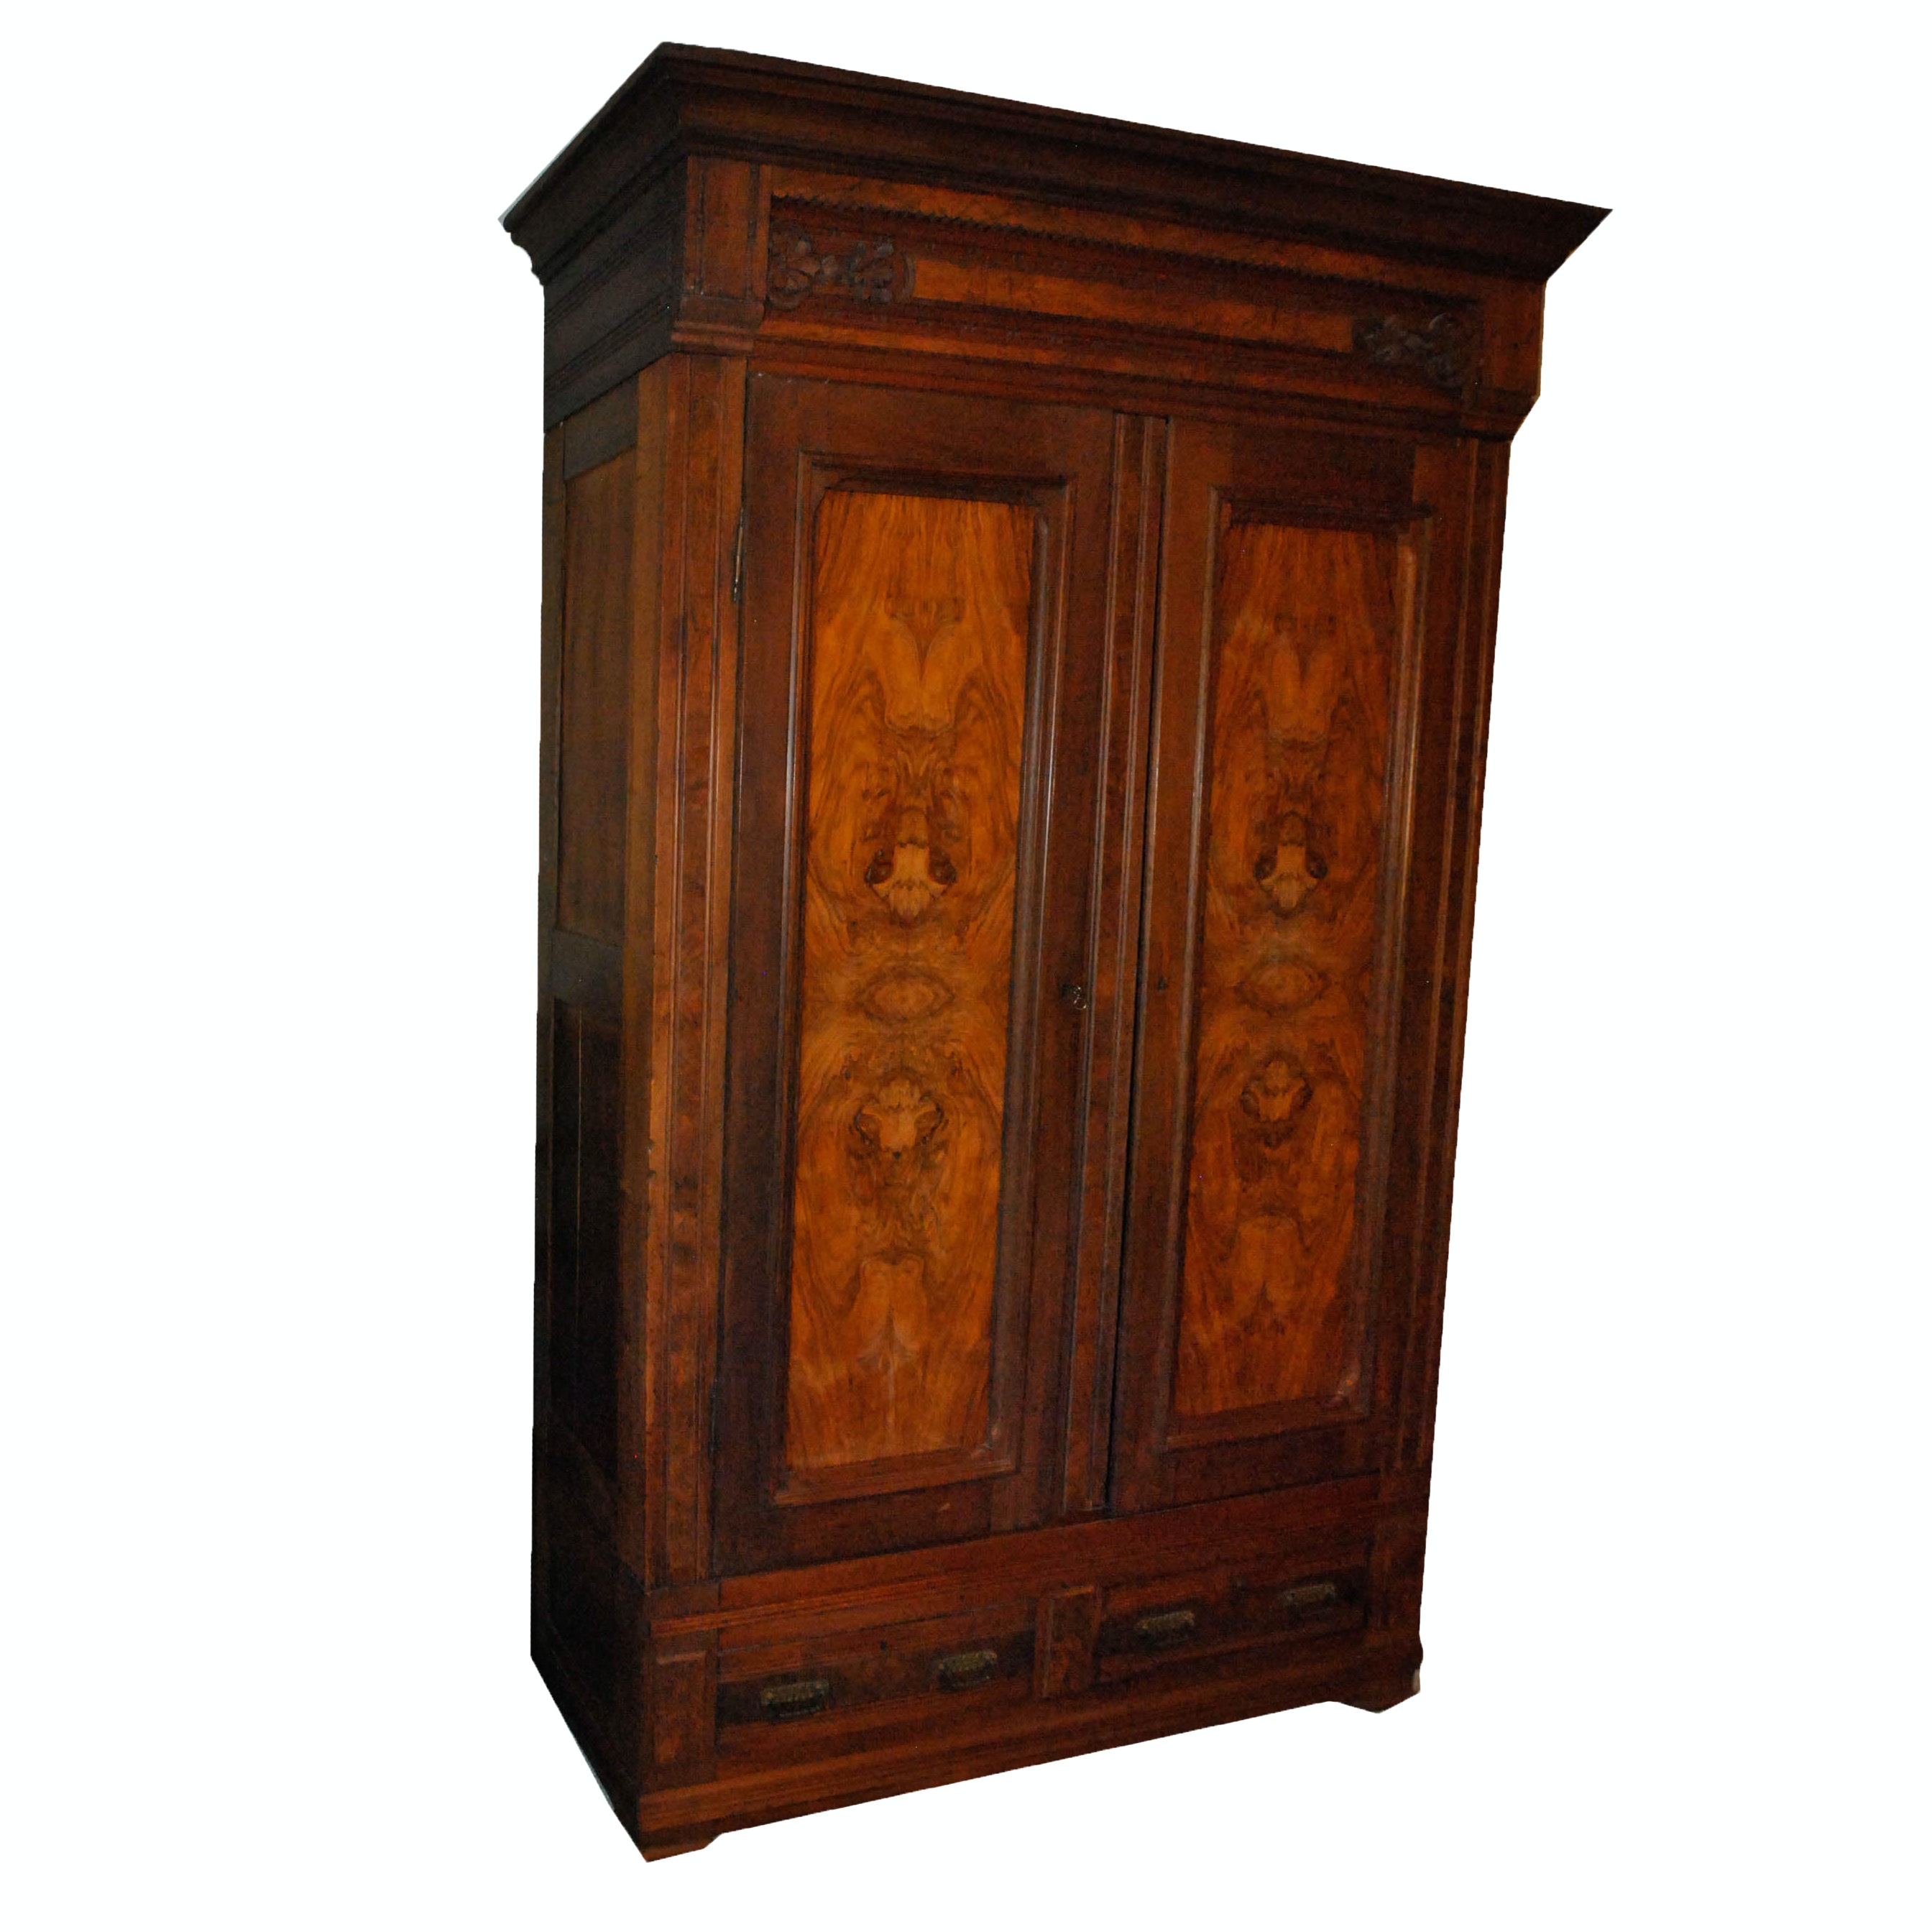 Antique Victorian Carved Walnut and Burled Wardrobe